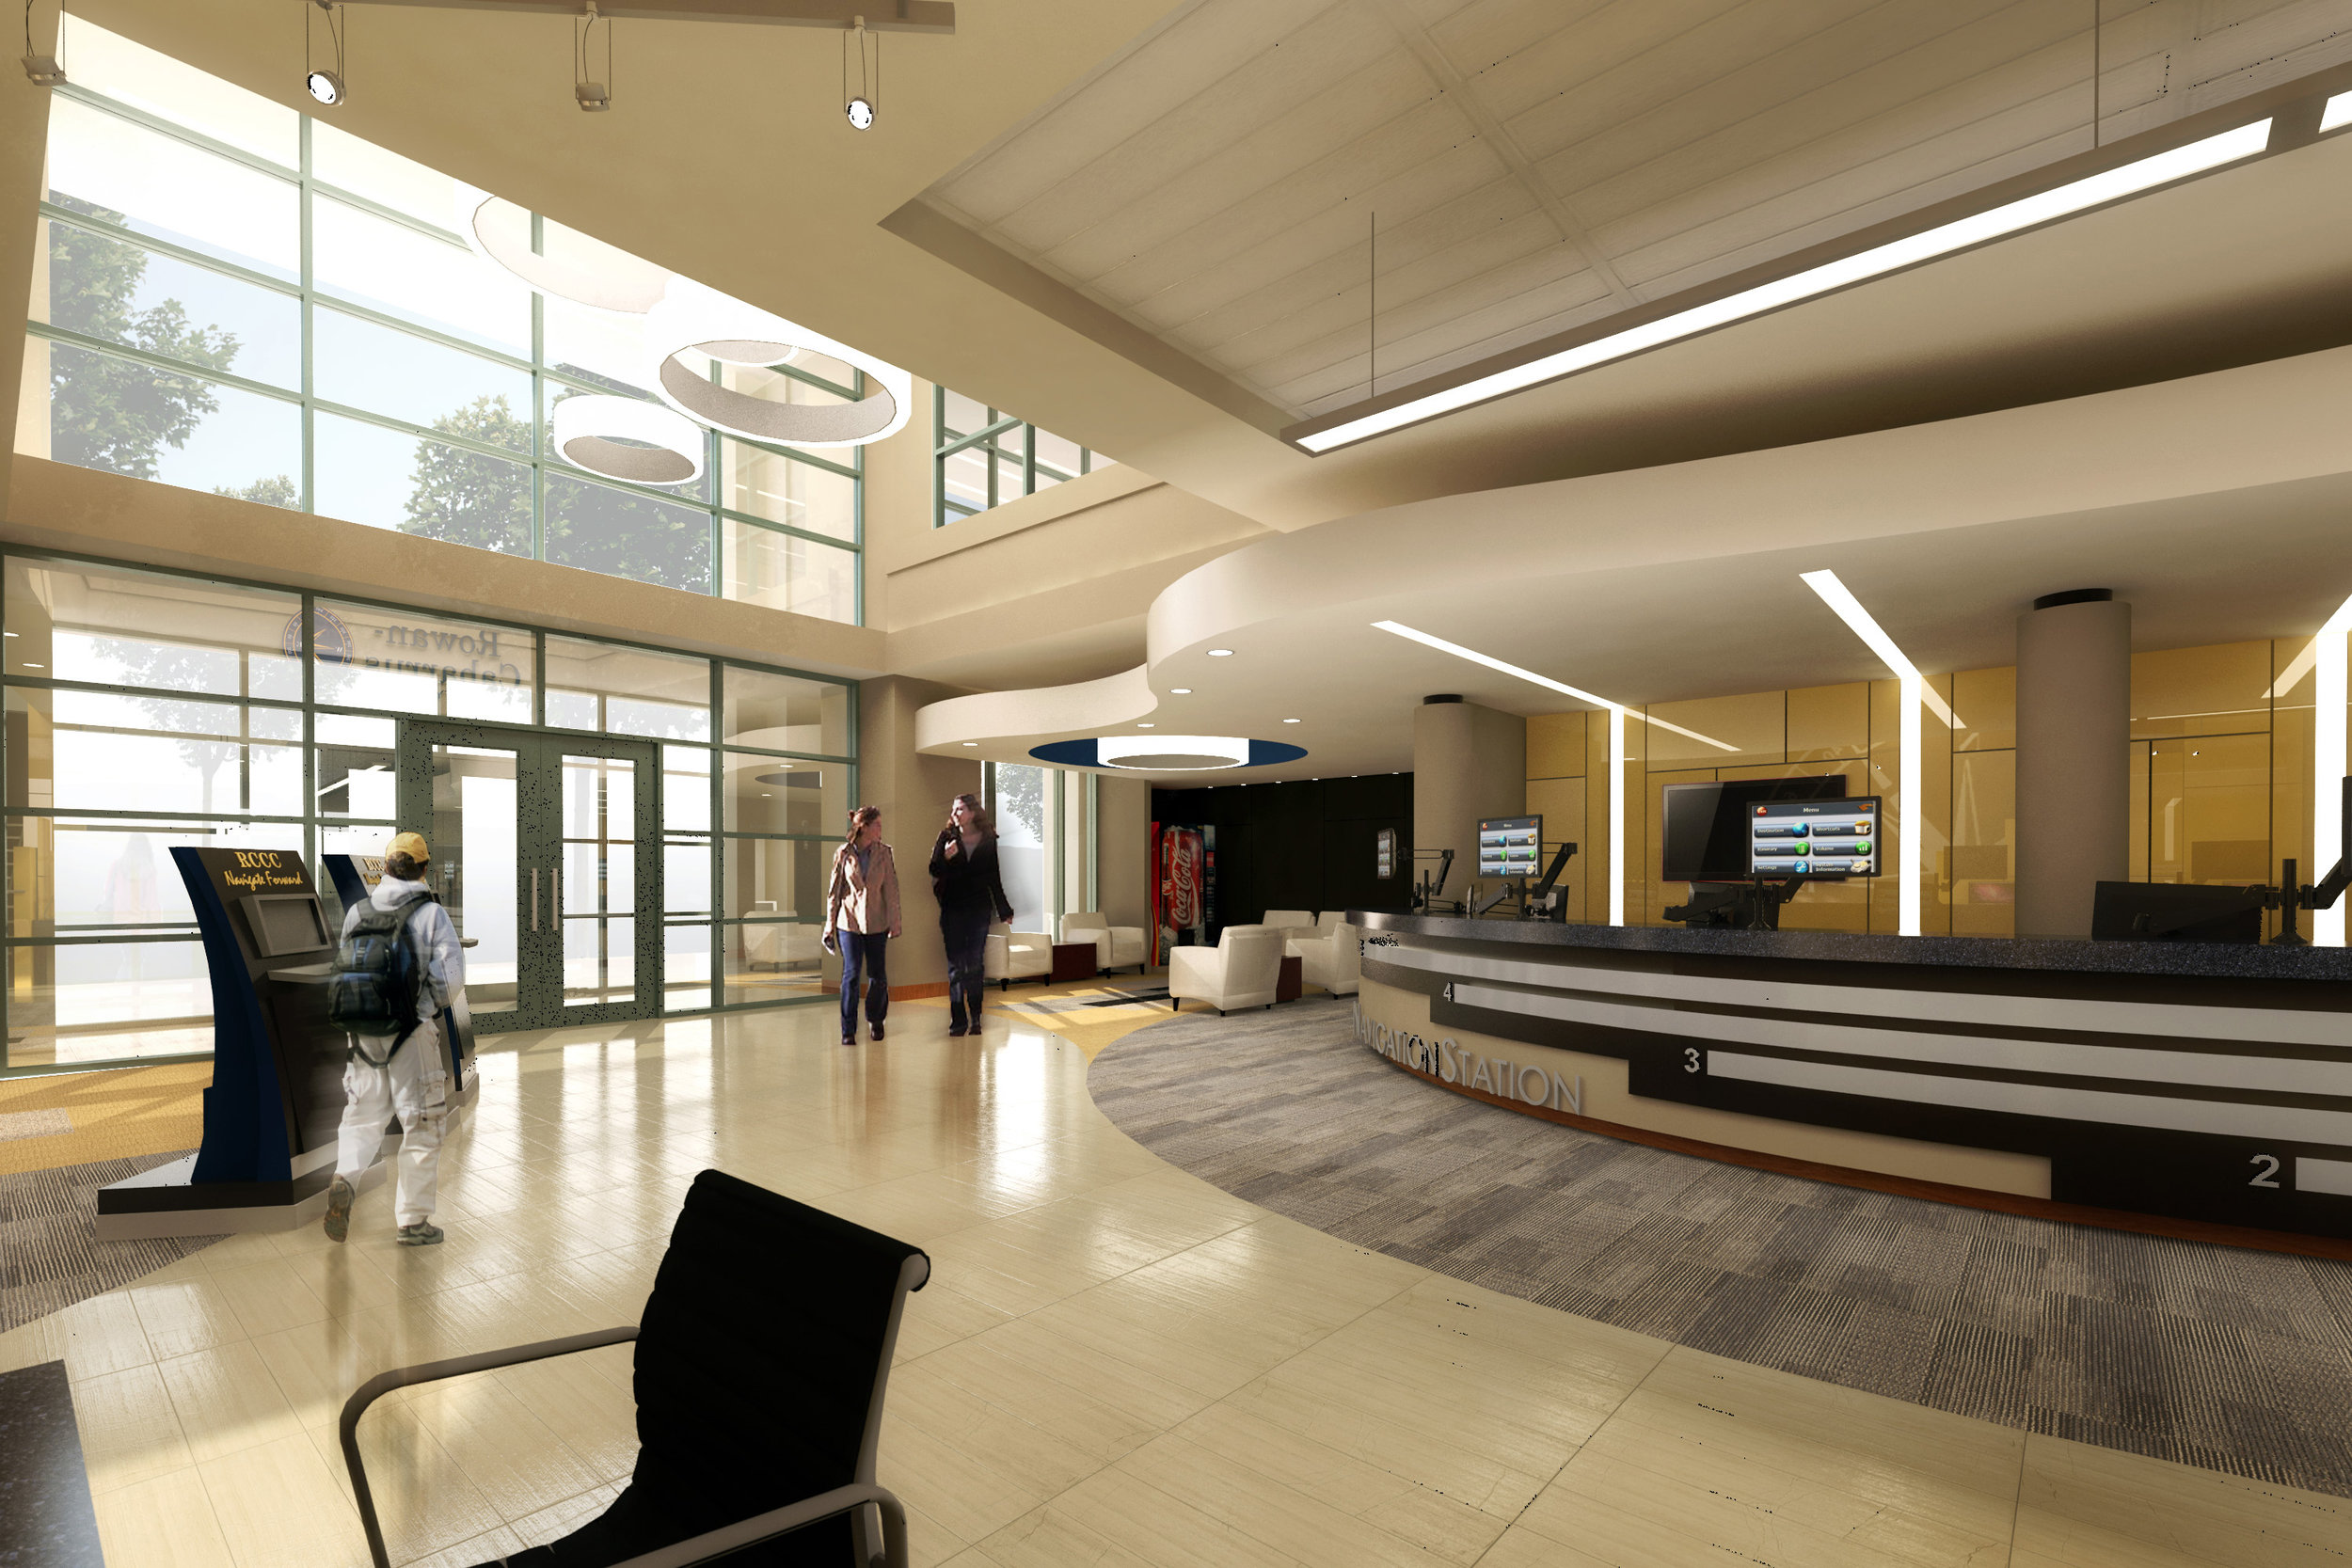 ADW-Higher-Education-RCCC-South-Campus-Concord-NC-Building-1000-Student-Services-Renovation-Rendering-Entry.jpg